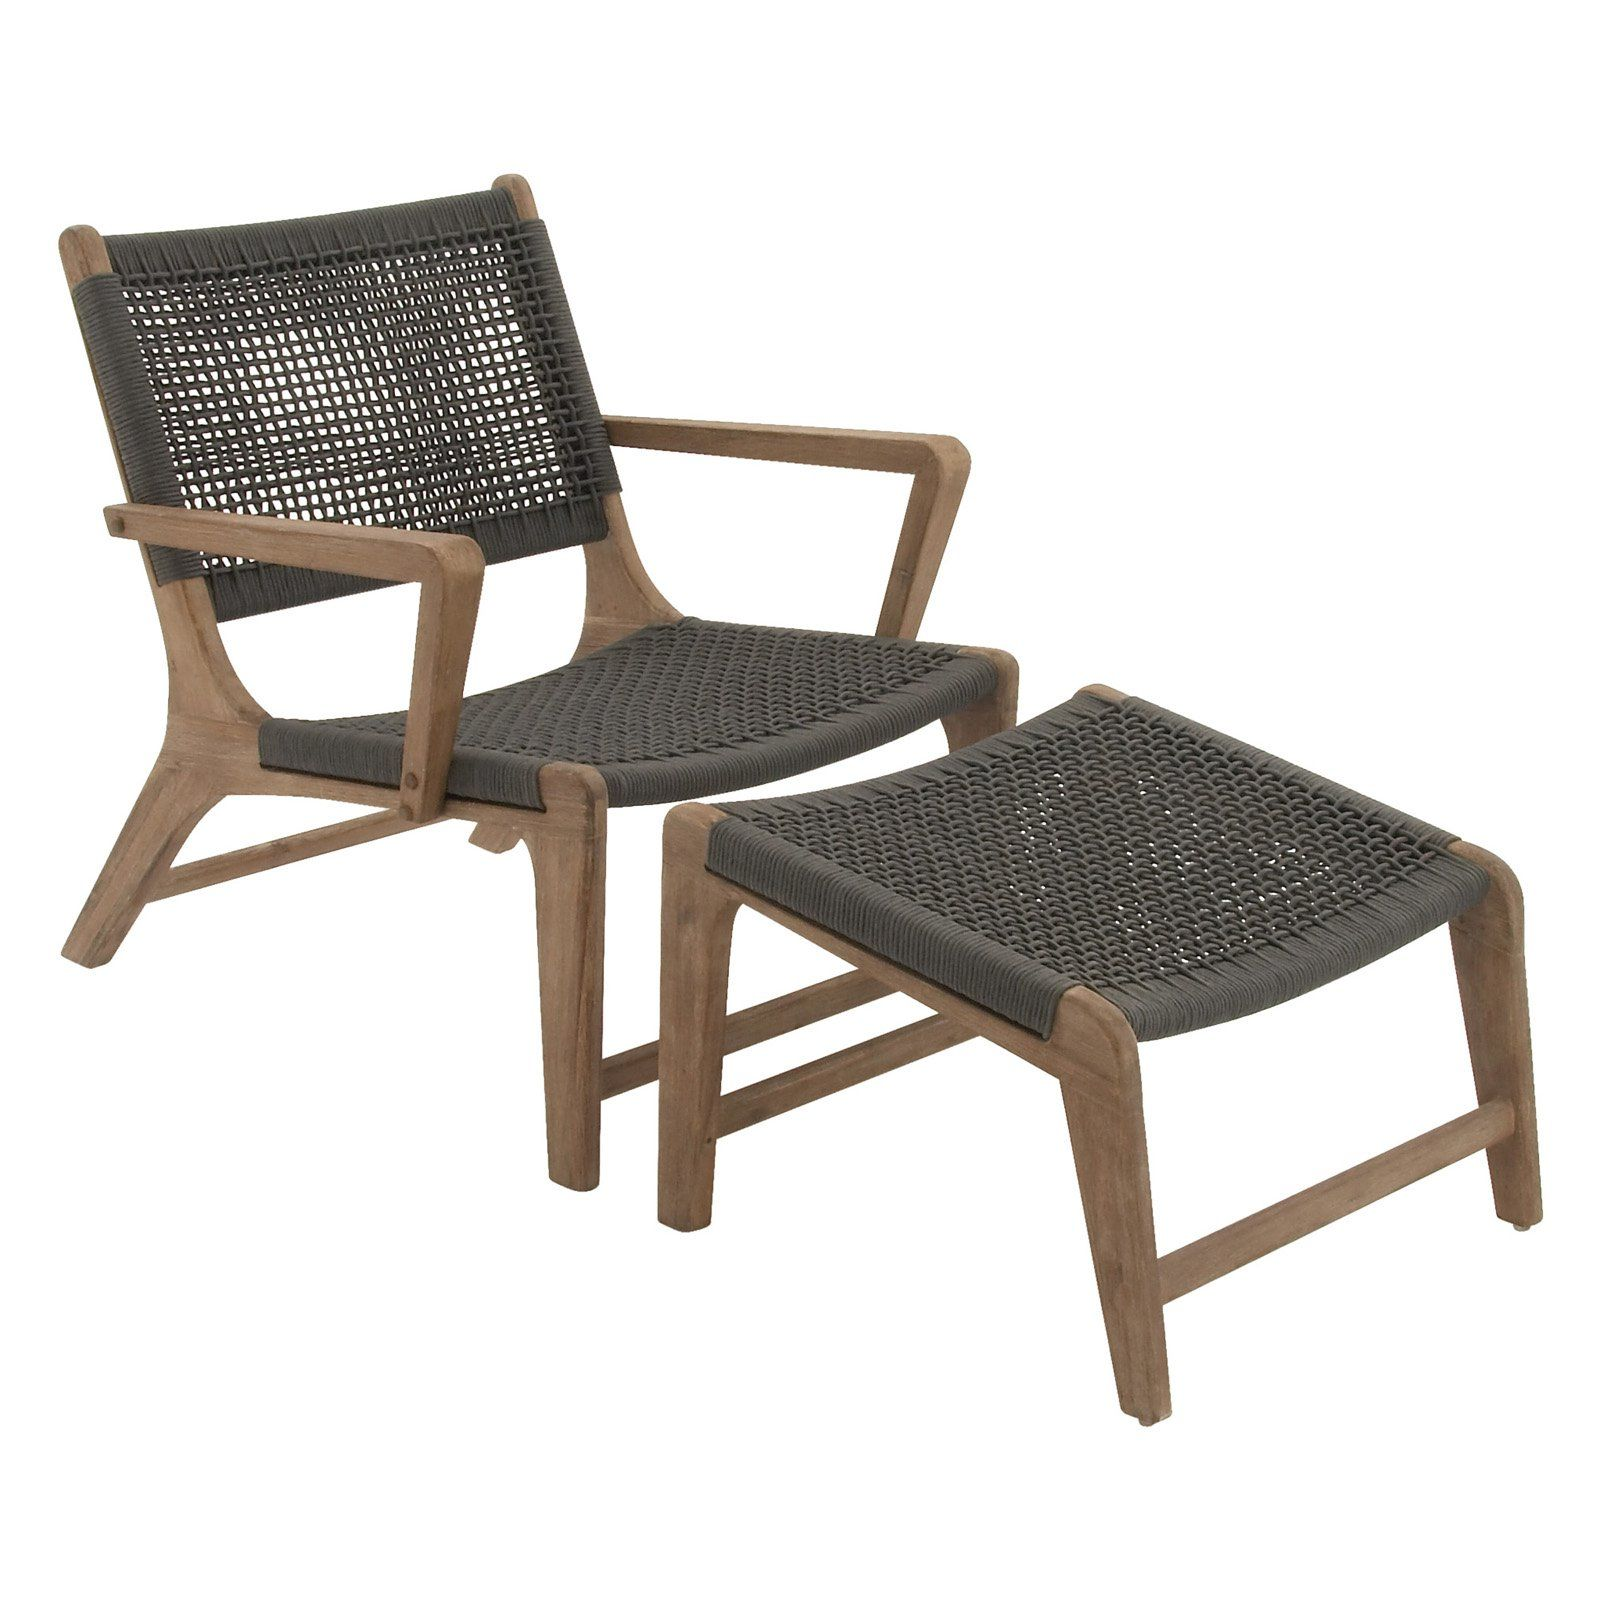 Swell Uma Great Outdoors Wood Rope Patio Chair With Ottoman From Machost Co Dining Chair Design Ideas Machostcouk